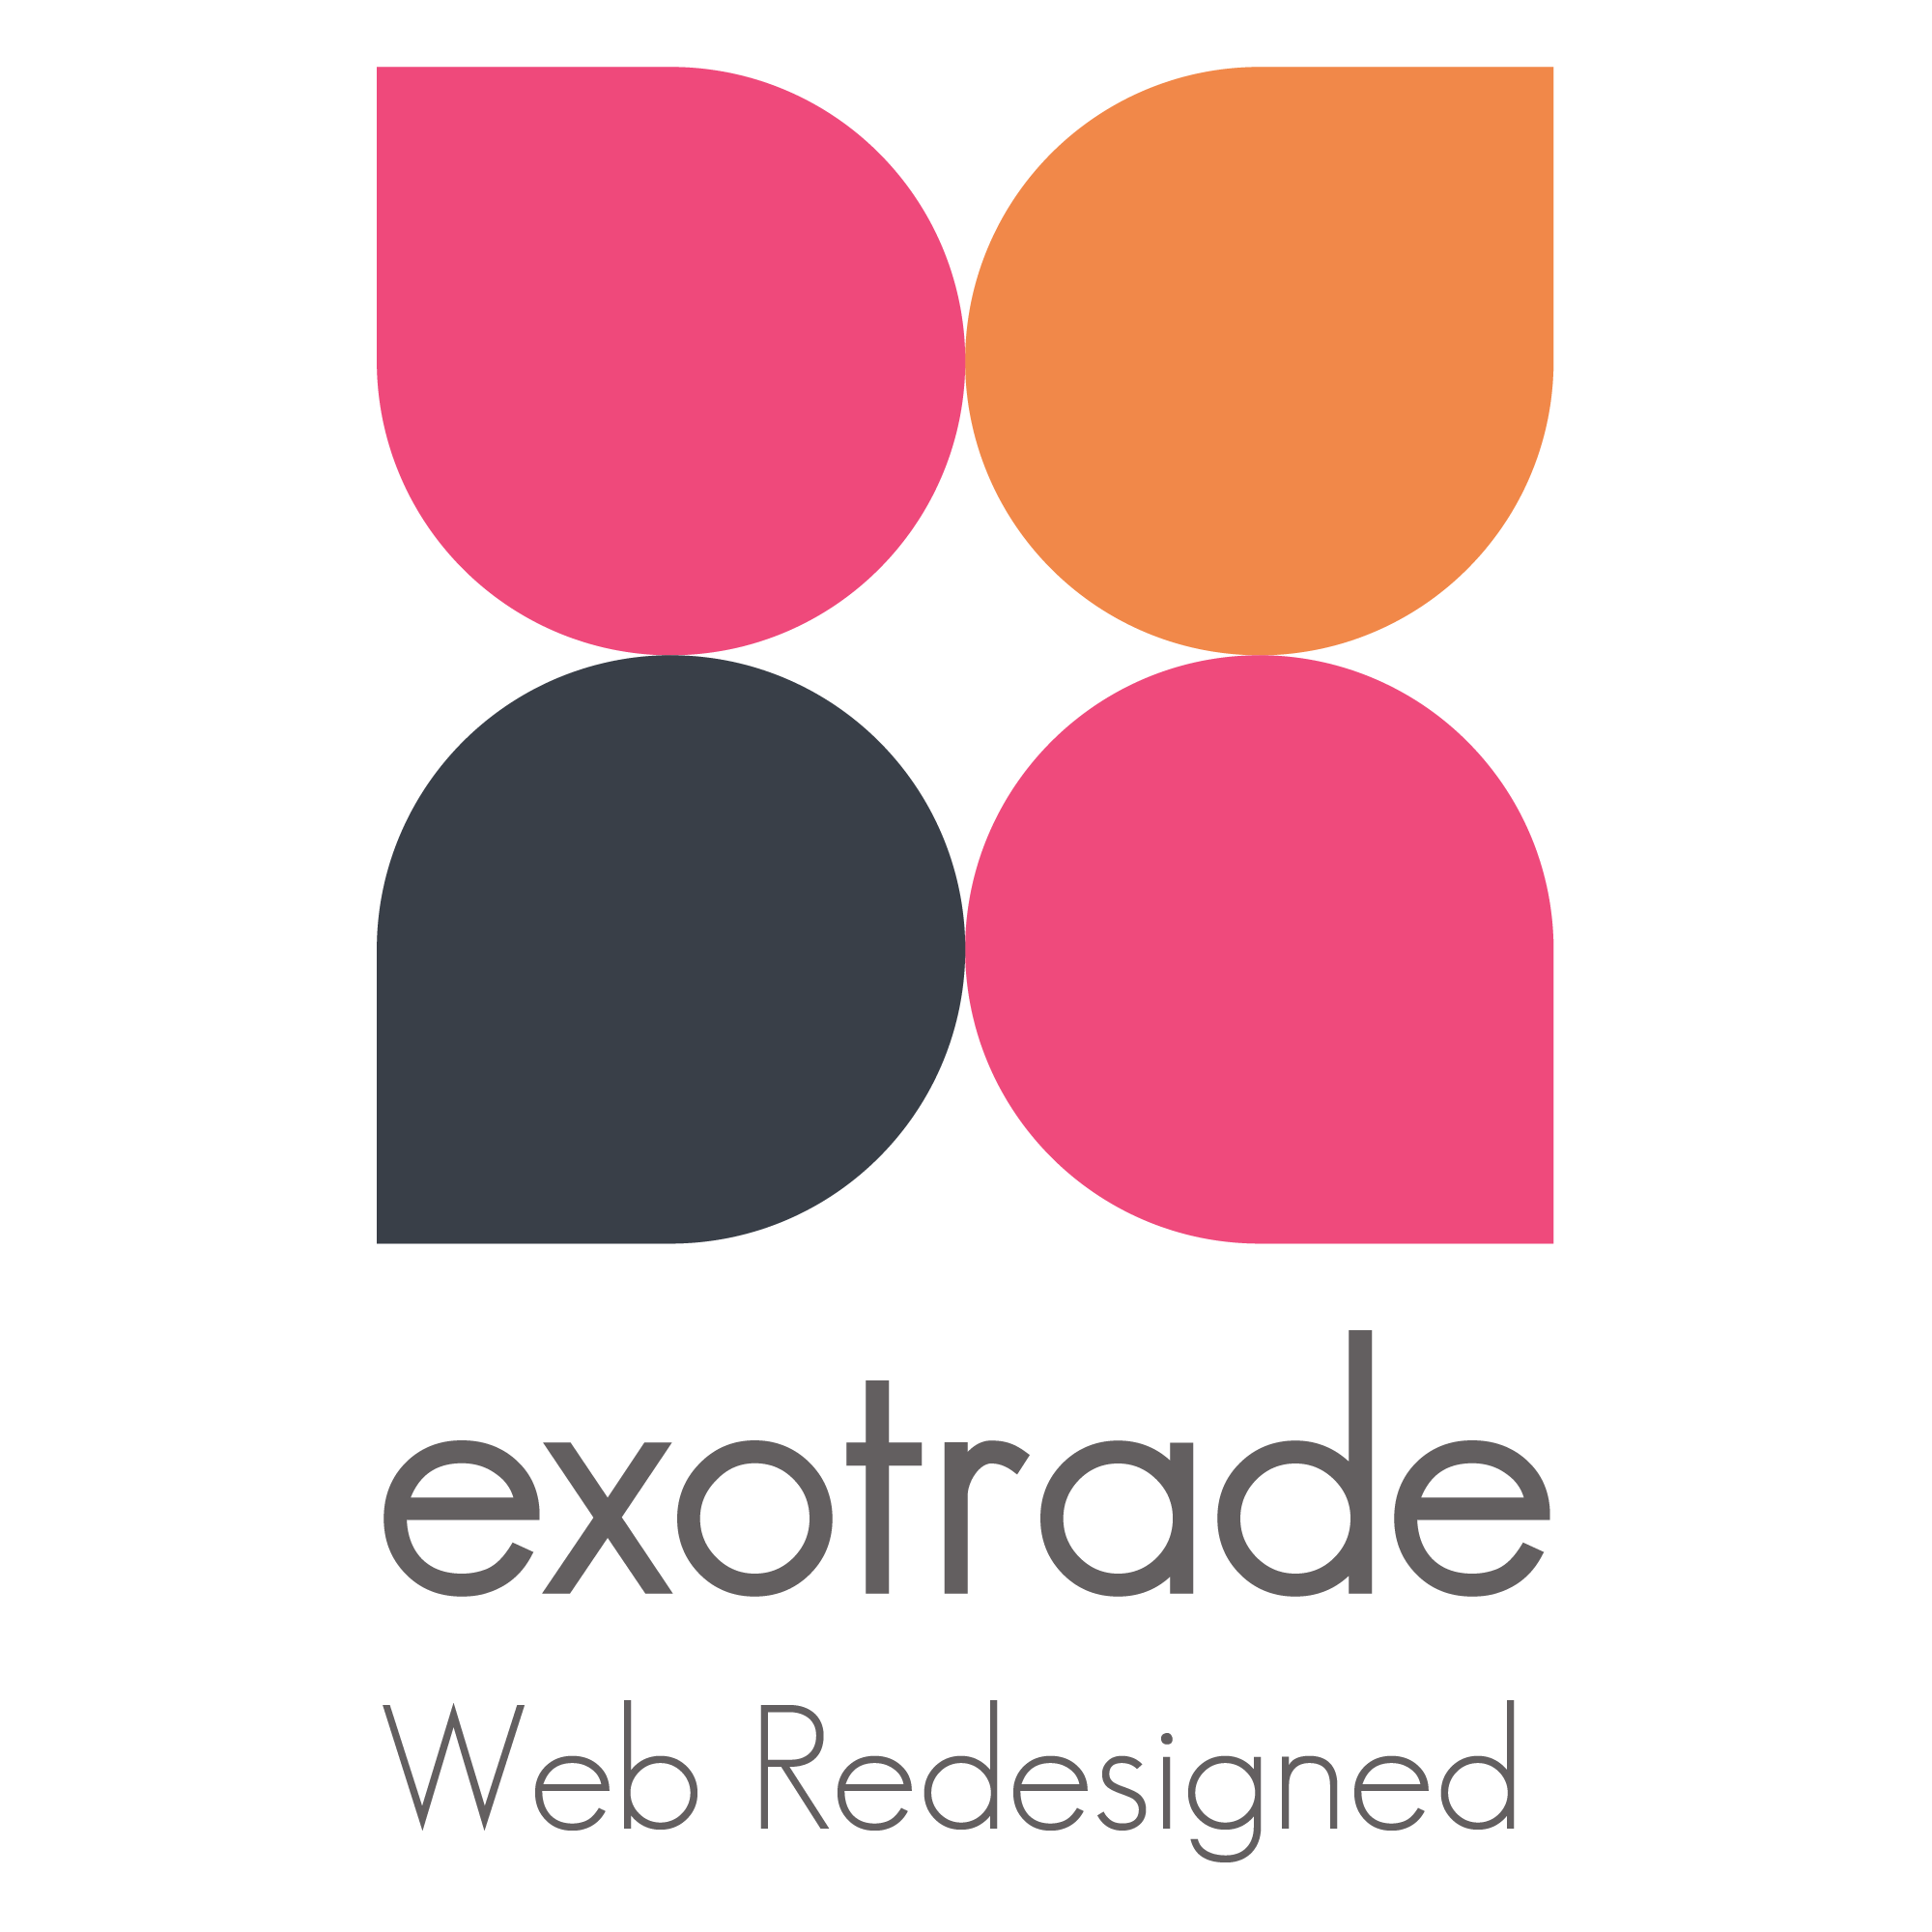 //www.exotrade.co.uk/wp-content/uploads/2019/02/exo-logo-transparent.png